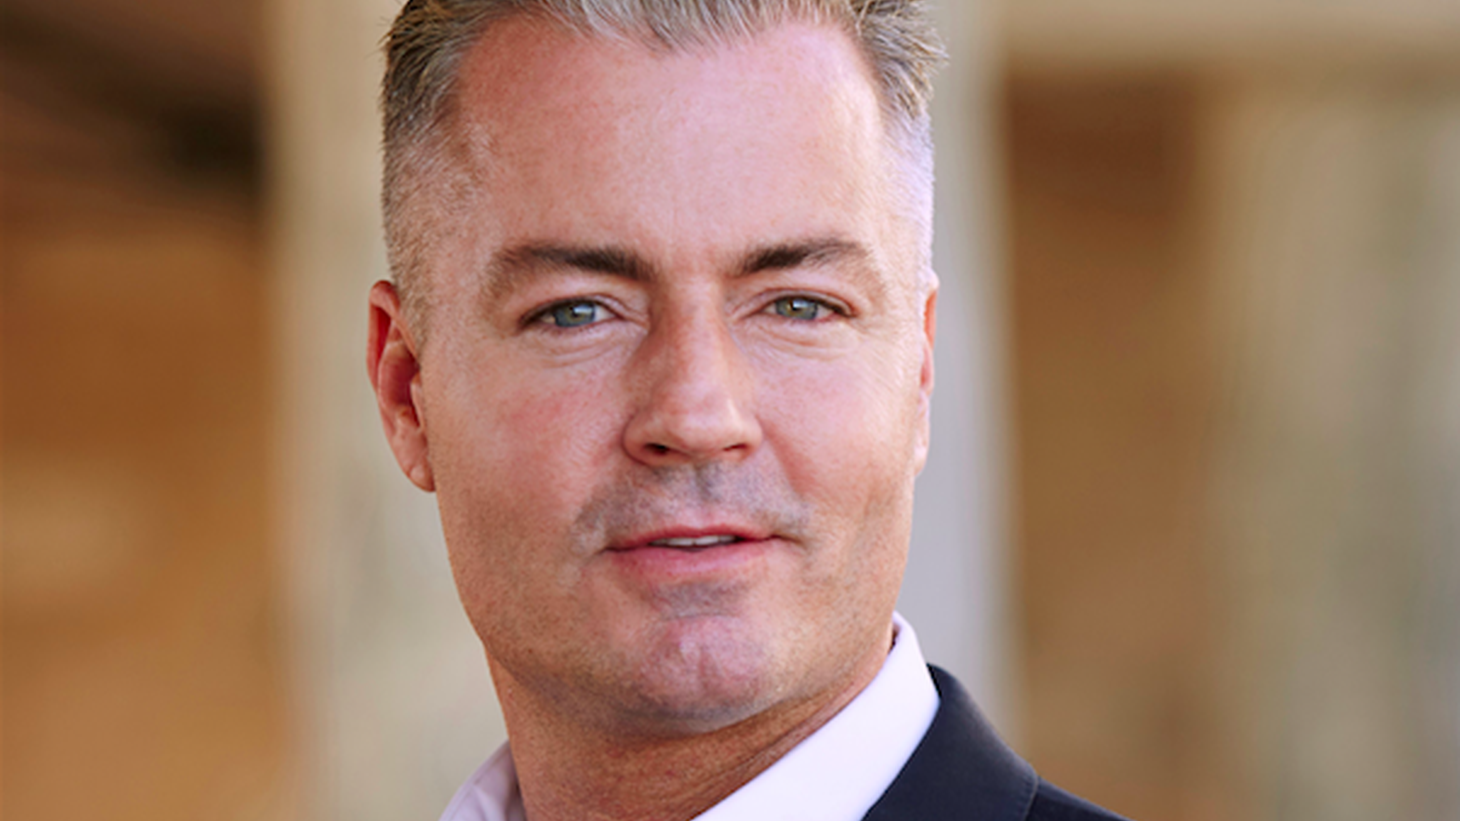 Republican State Assemblyman Travis Allen represents parts of Orange County, including Huntington Beach. A new LA Times poll puts him at 5th place in the race to be California's next governor.